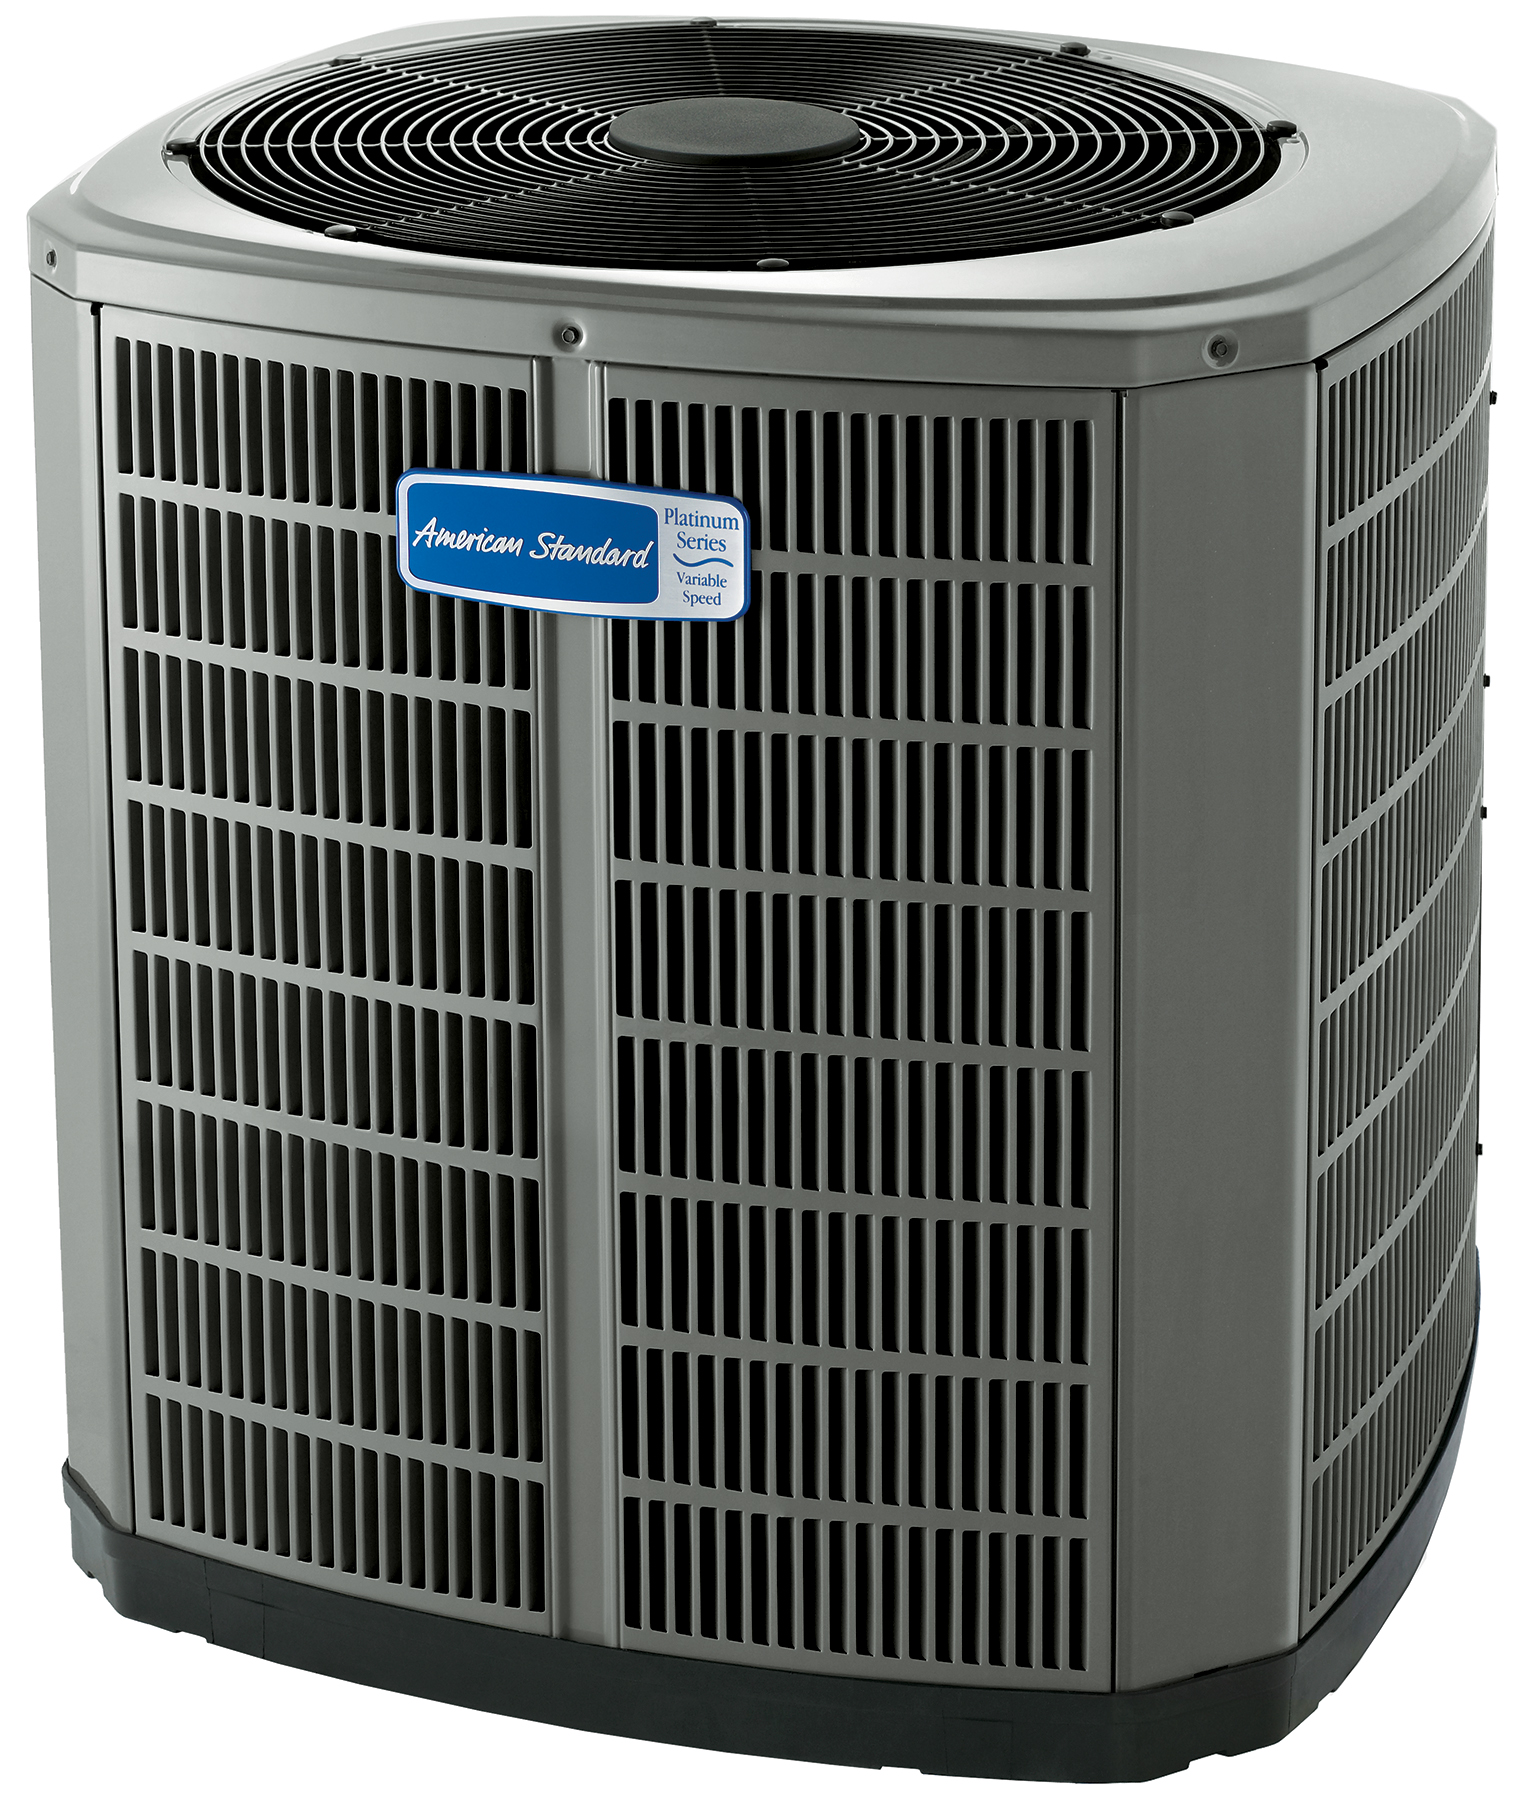 18-20 Seer Variable Outdoor Units